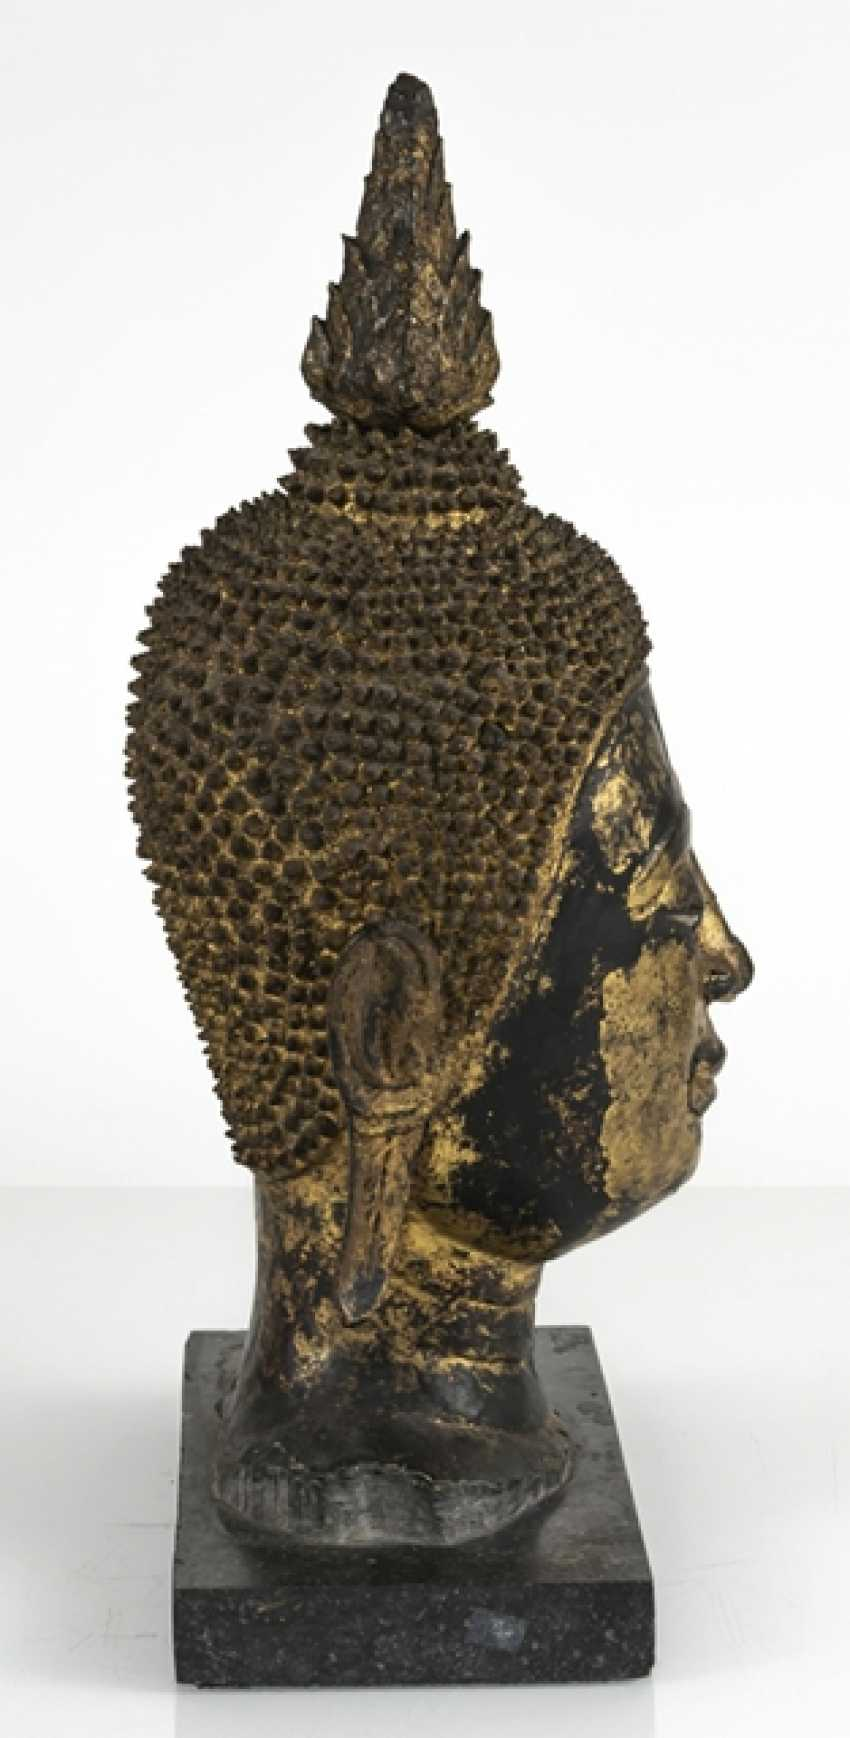 Head of the Buddha Sakyamuni made of Bronze with gold-toned and black lacquer version - photo 2